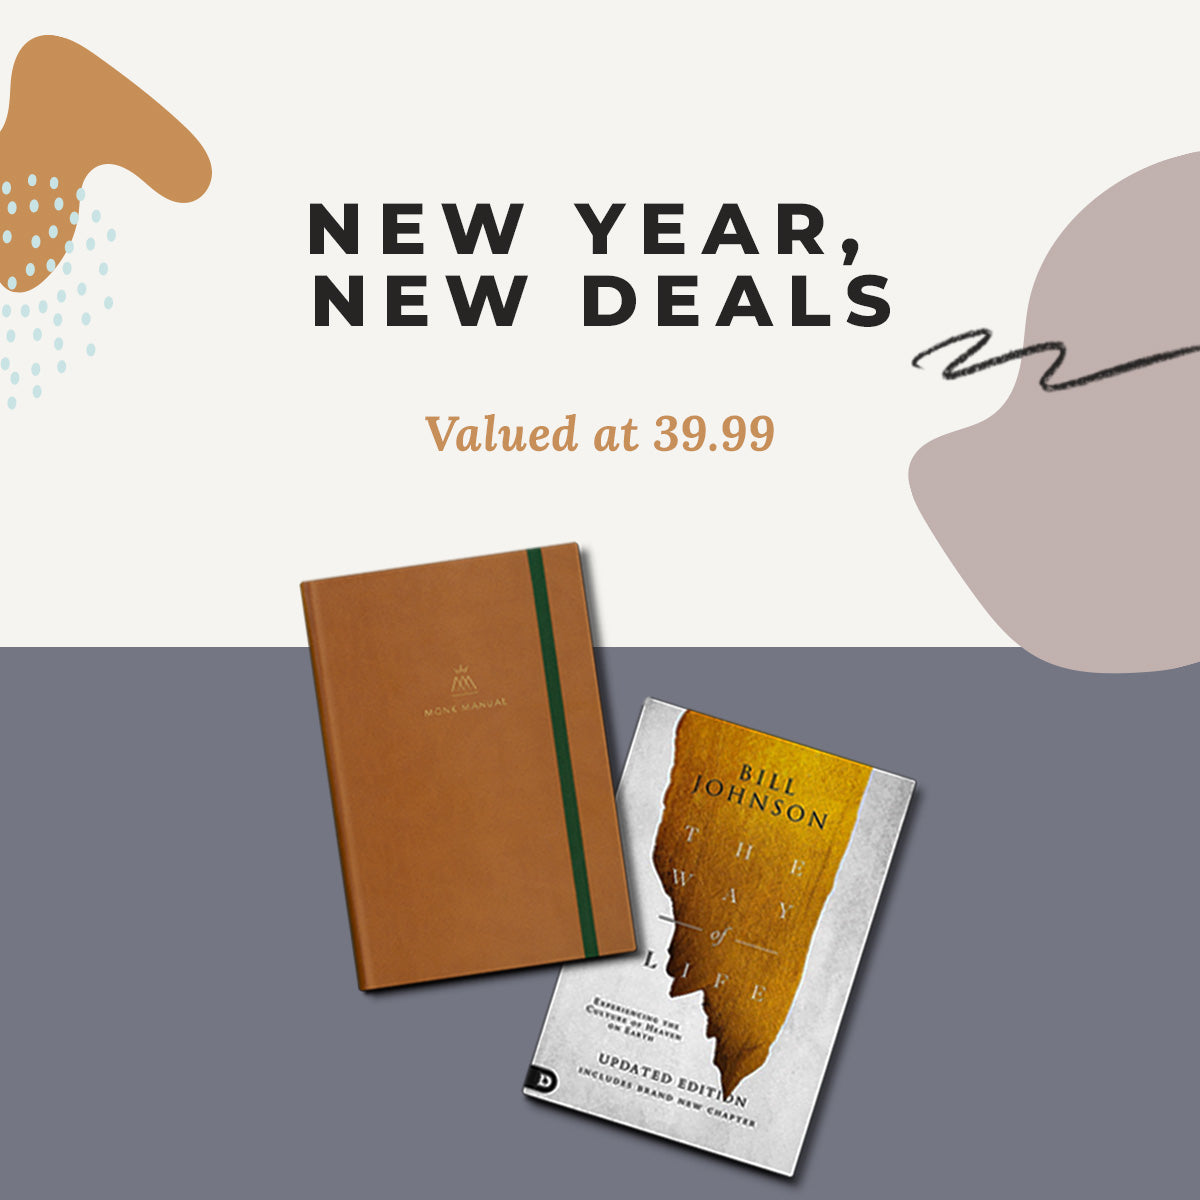 New Year, New Deals | The Way of Life and the Monk Manual